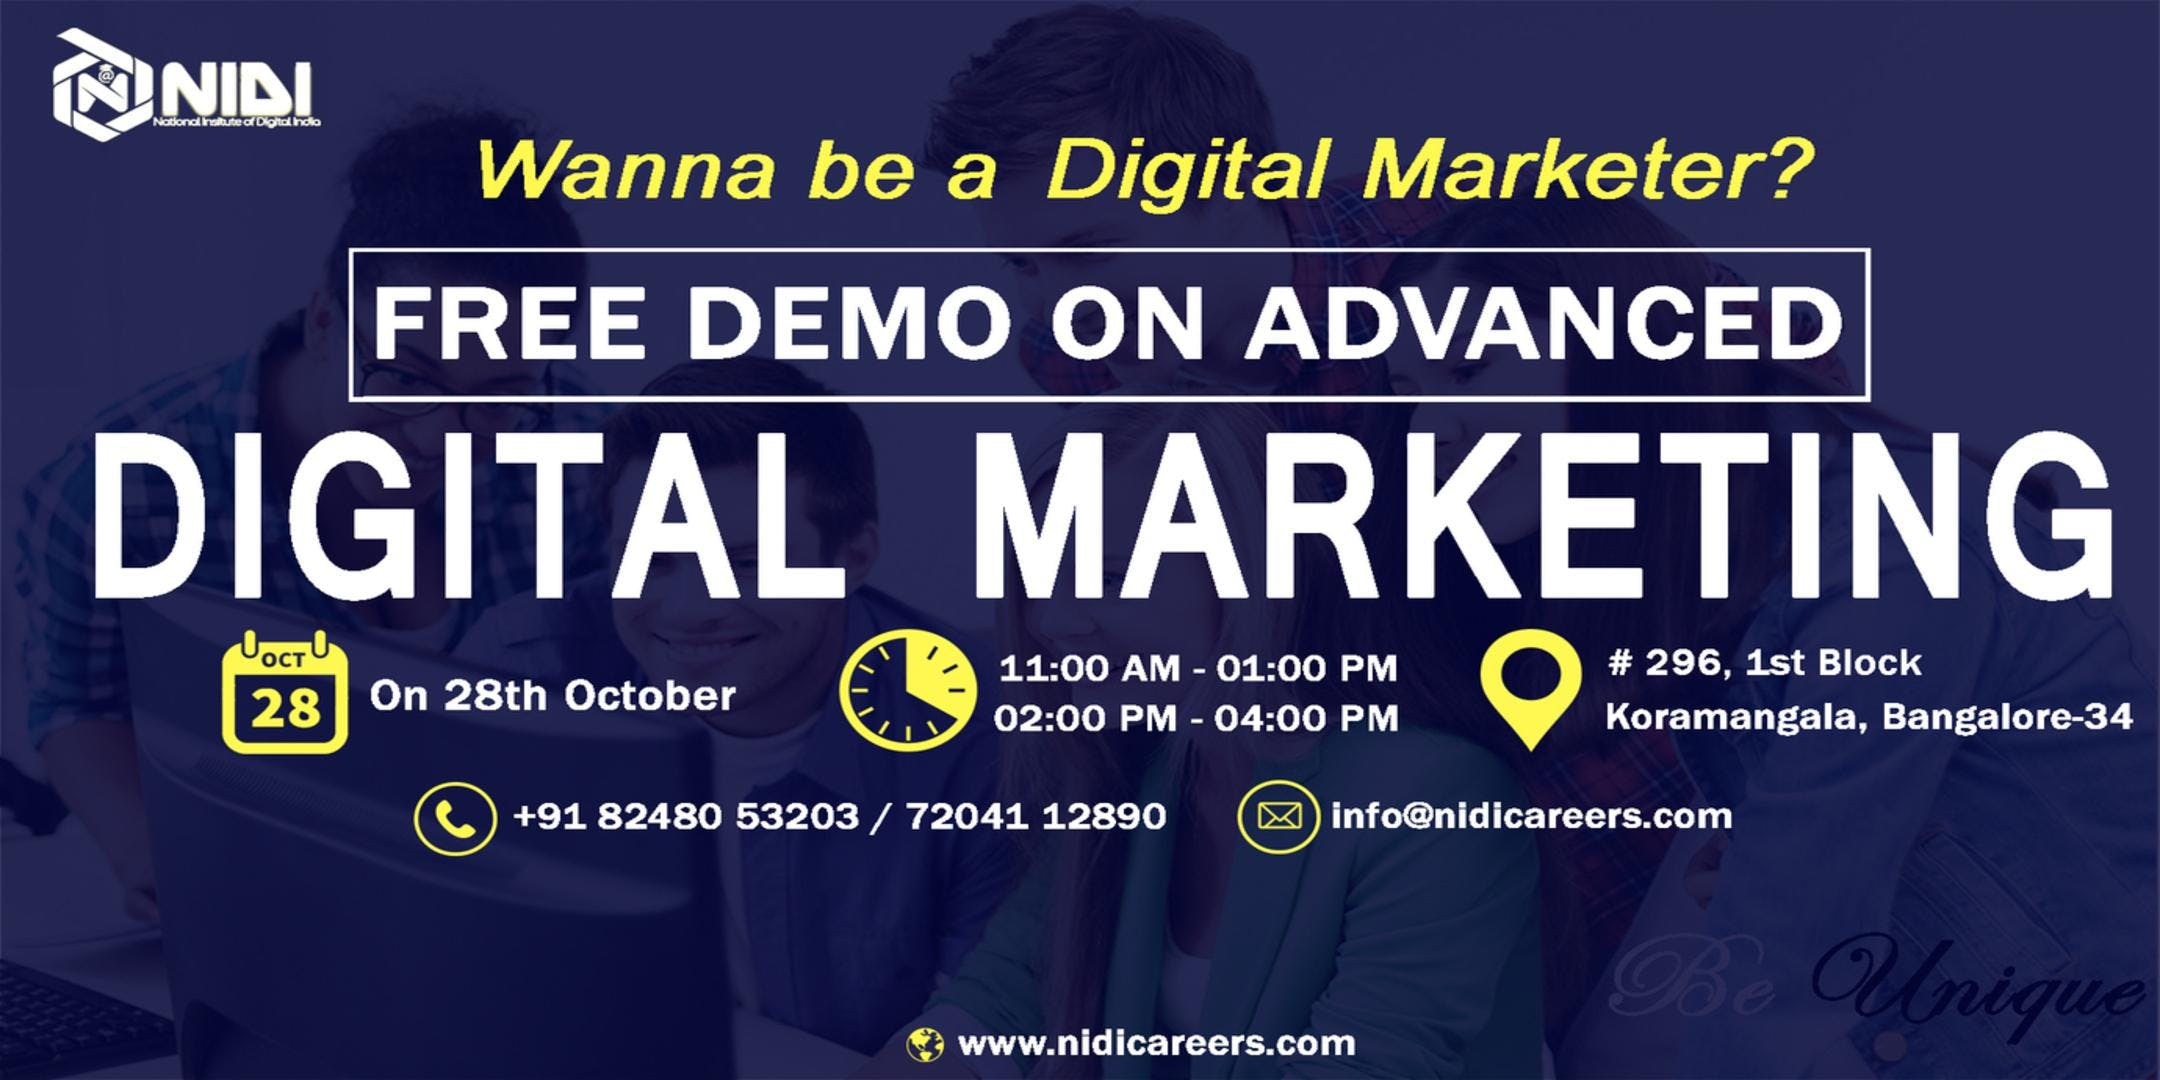 DemoWorkshop for Digital marketing